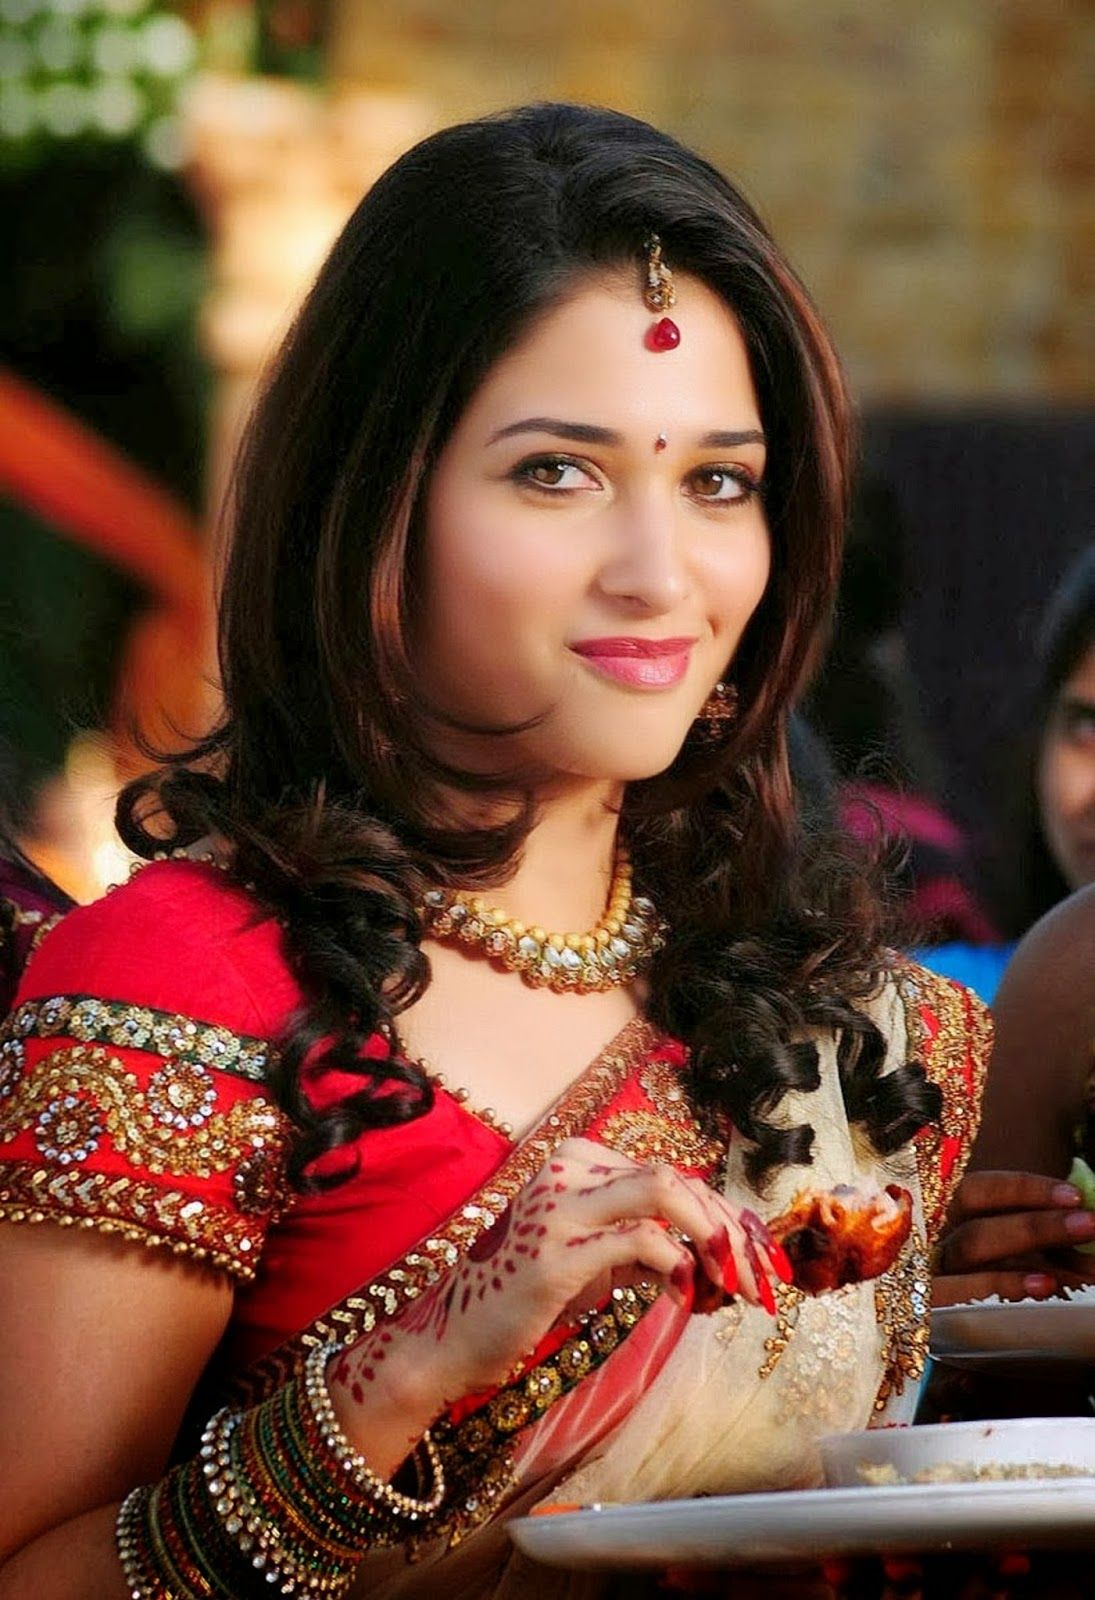 download tamannna bhatia hd wallpapers tamanna bhatia hd